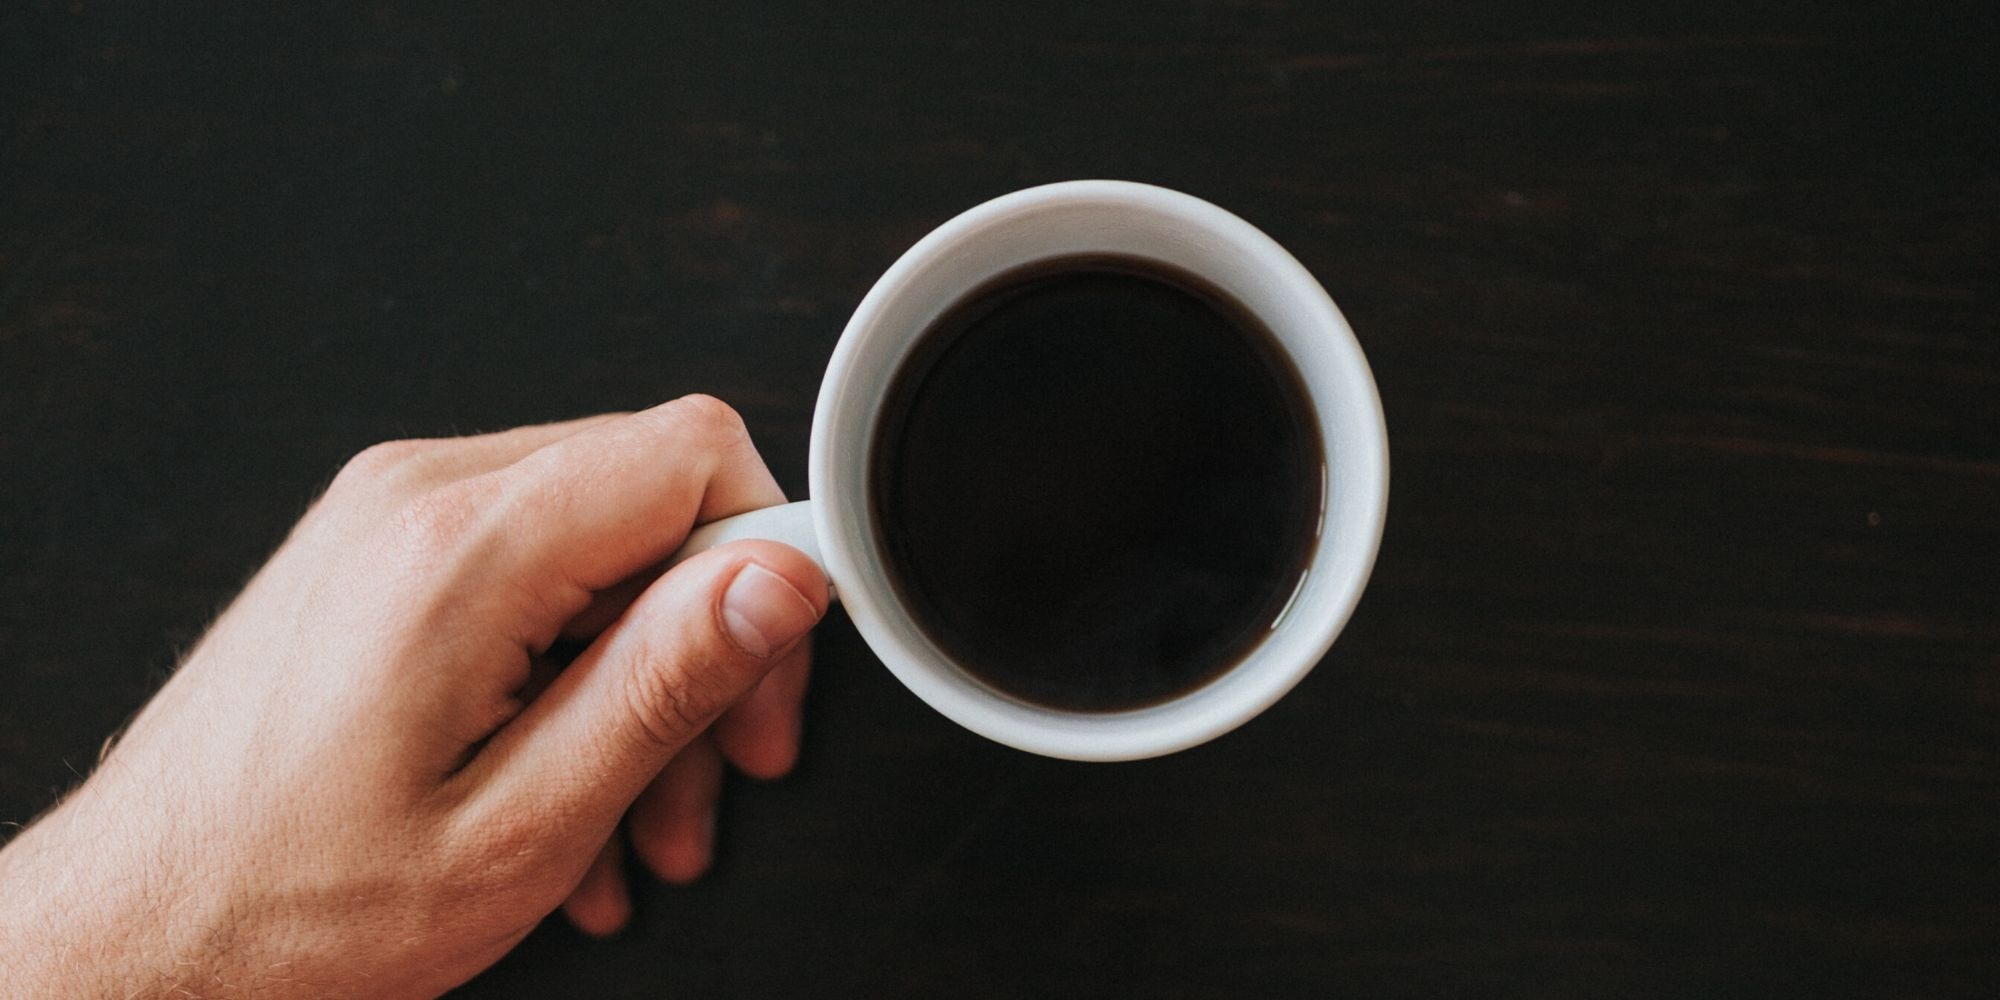 person holding black coffee in white cup